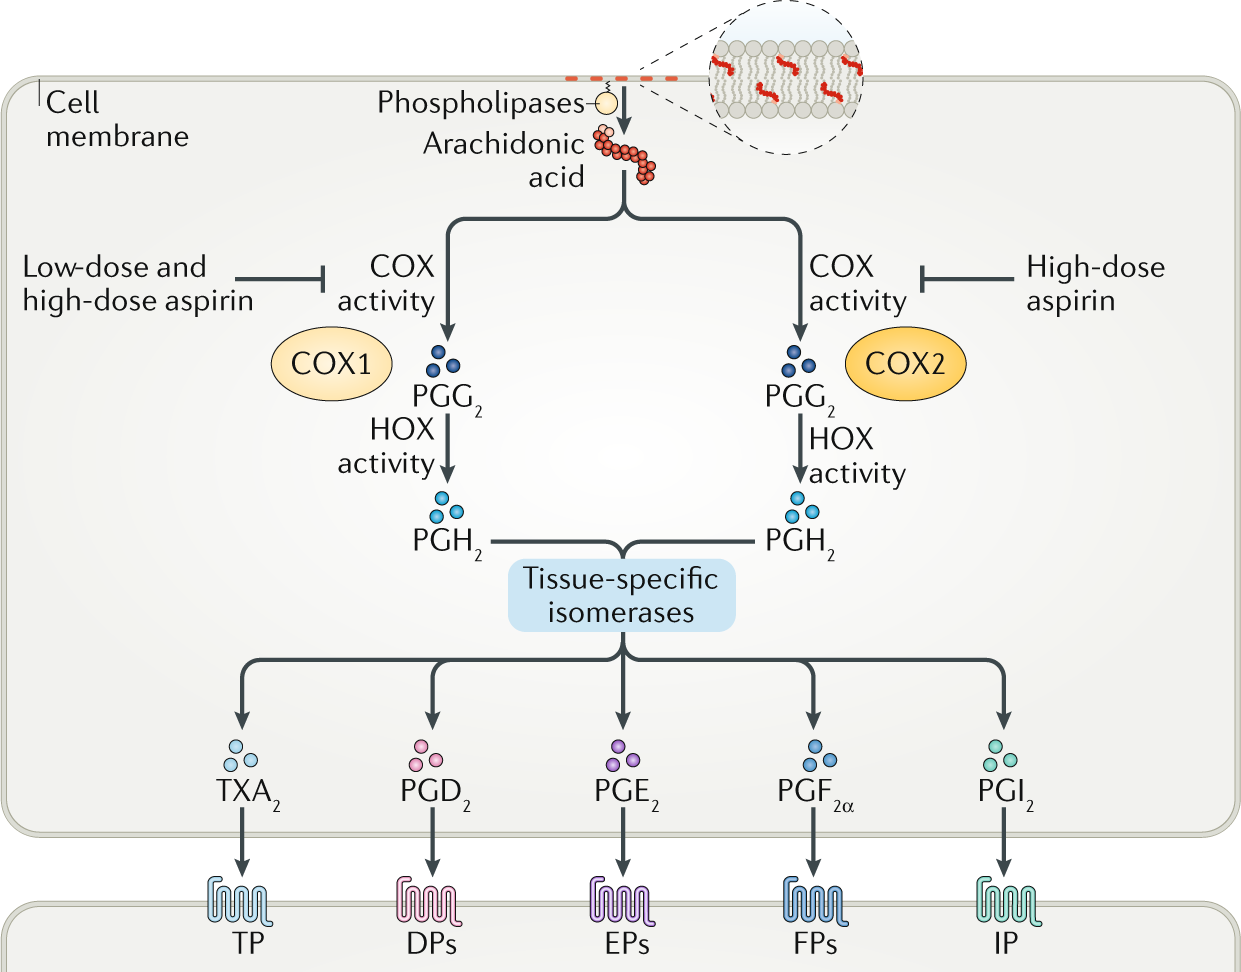 Role of aspirin in primary prevention of cardiovascular disease